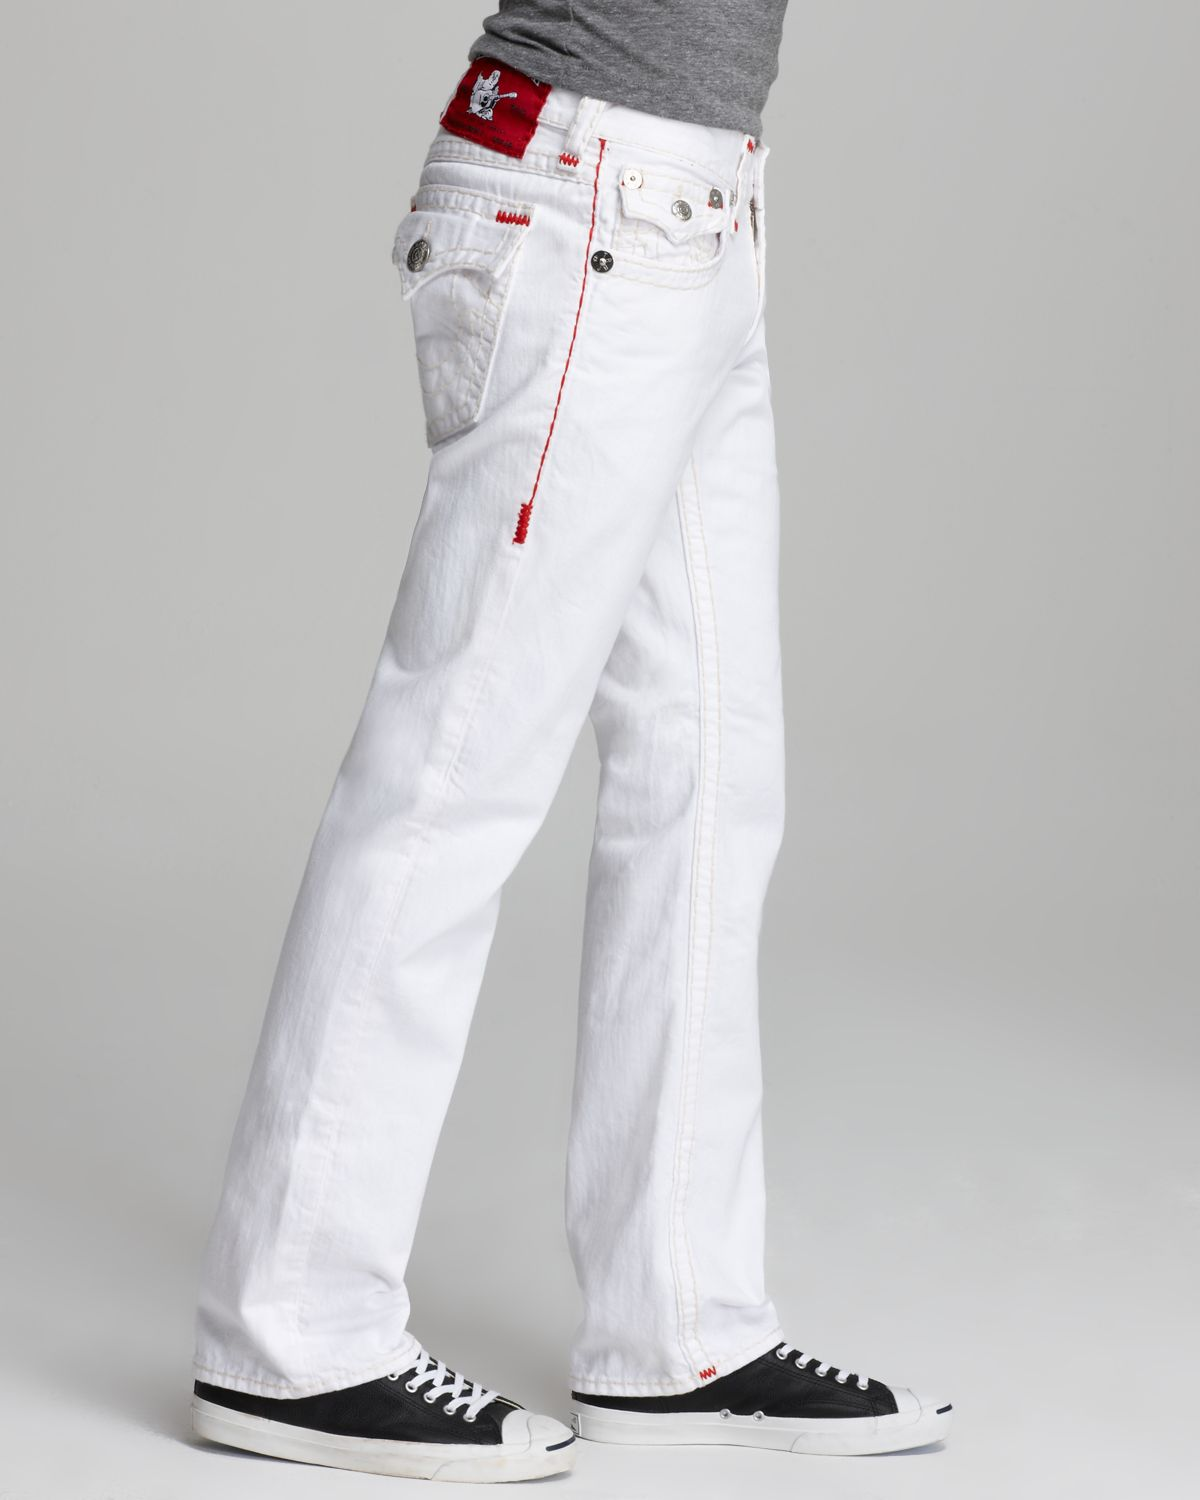 True Religion Jeans Ricky Super T Straight Fit in Optic White for Men